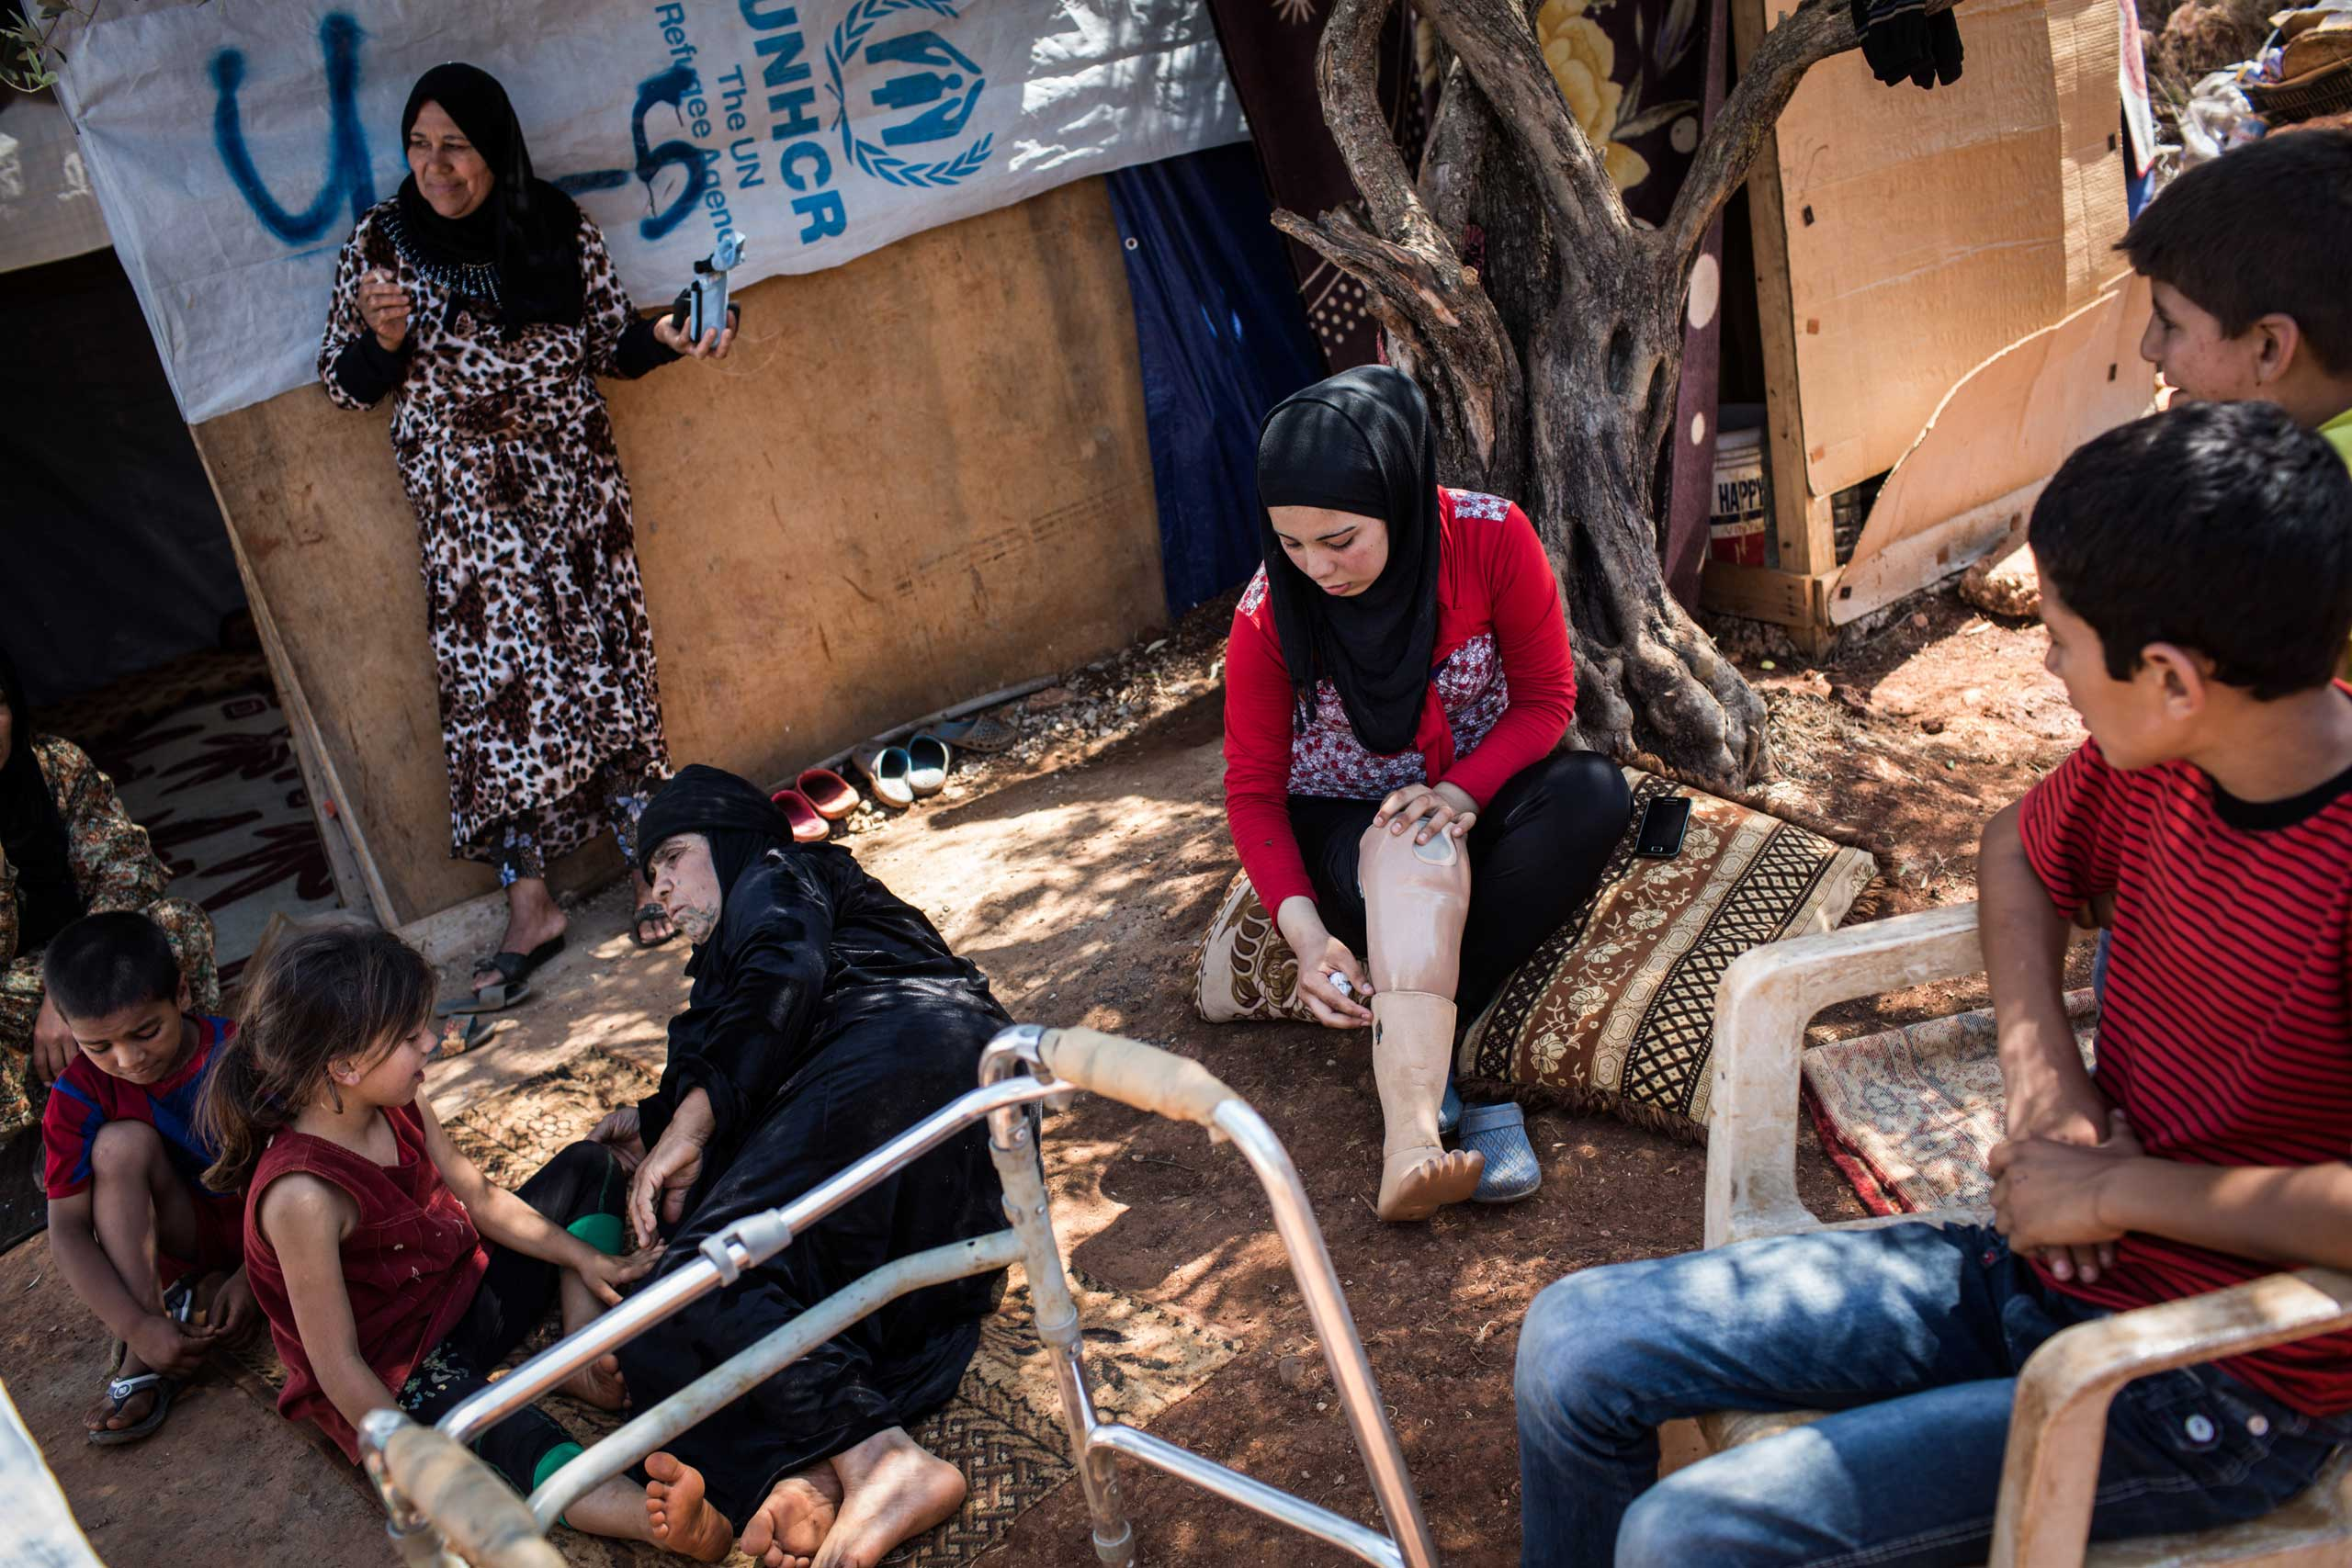 Fatima, 15, at an informal settlement near Tripoli, Lebanon, June 24, 2014. She was going to Homs in 2011 with her father and brother when a bomb fell. She was depressed after receiving an ill-fitting prosthetic but later got a better one.